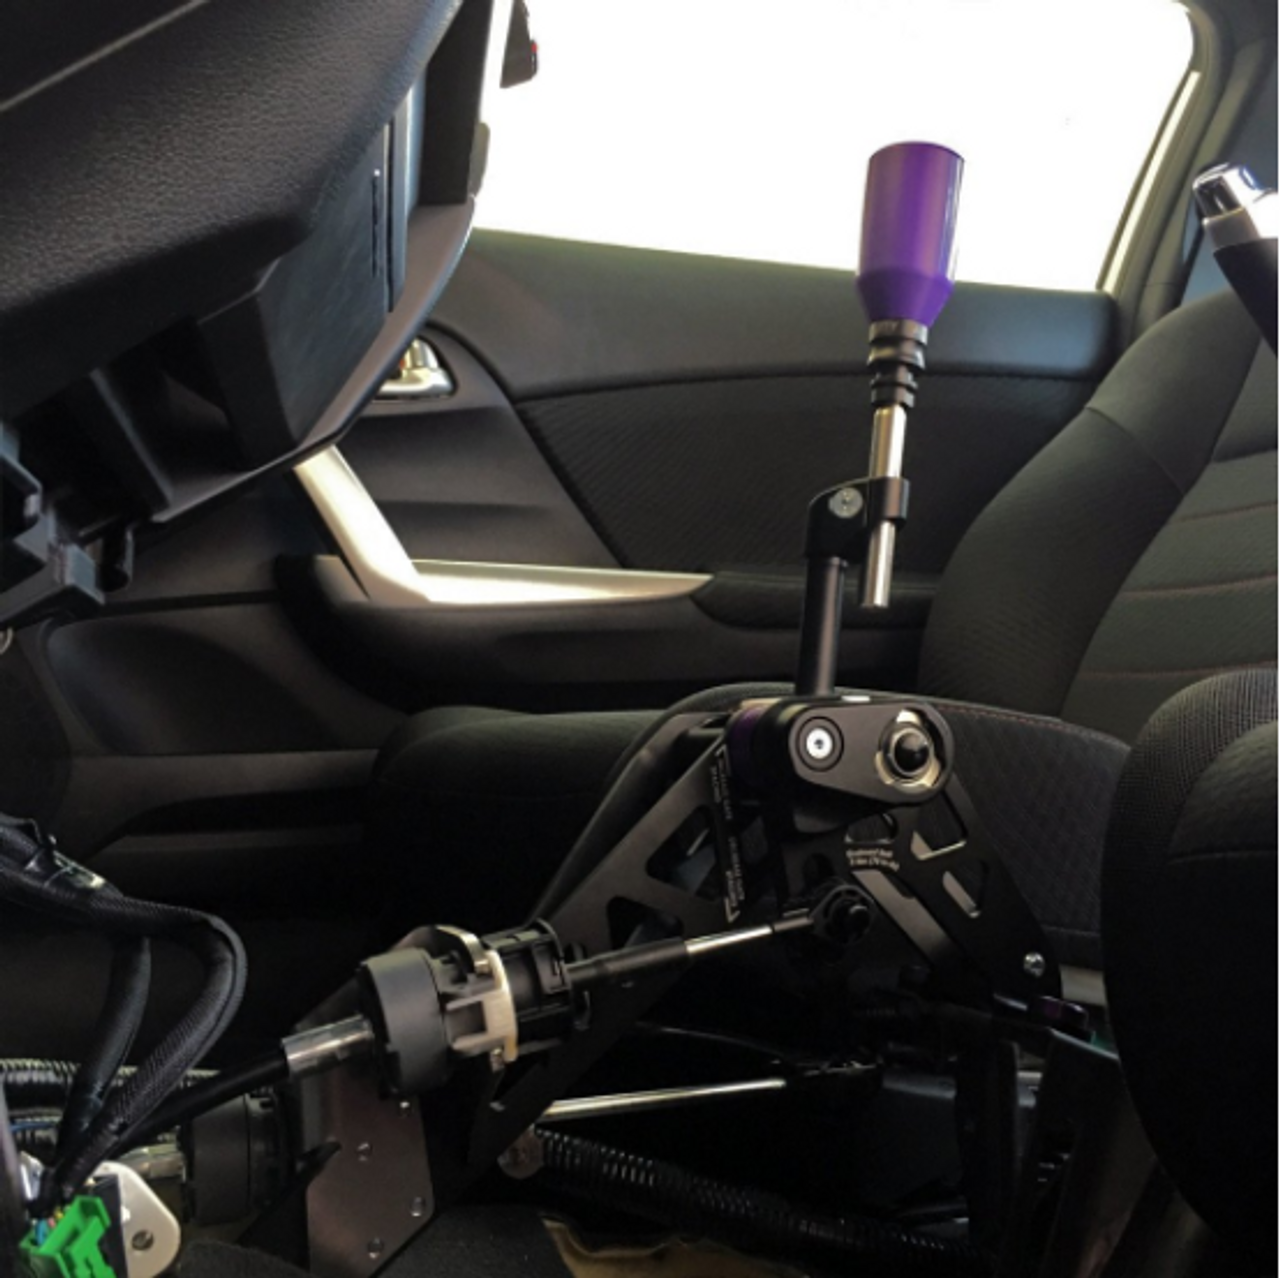 Admirable Acuity 9Th Gen Civic Adjustable Short Shifter Caraccident5 Cool Chair Designs And Ideas Caraccident5Info